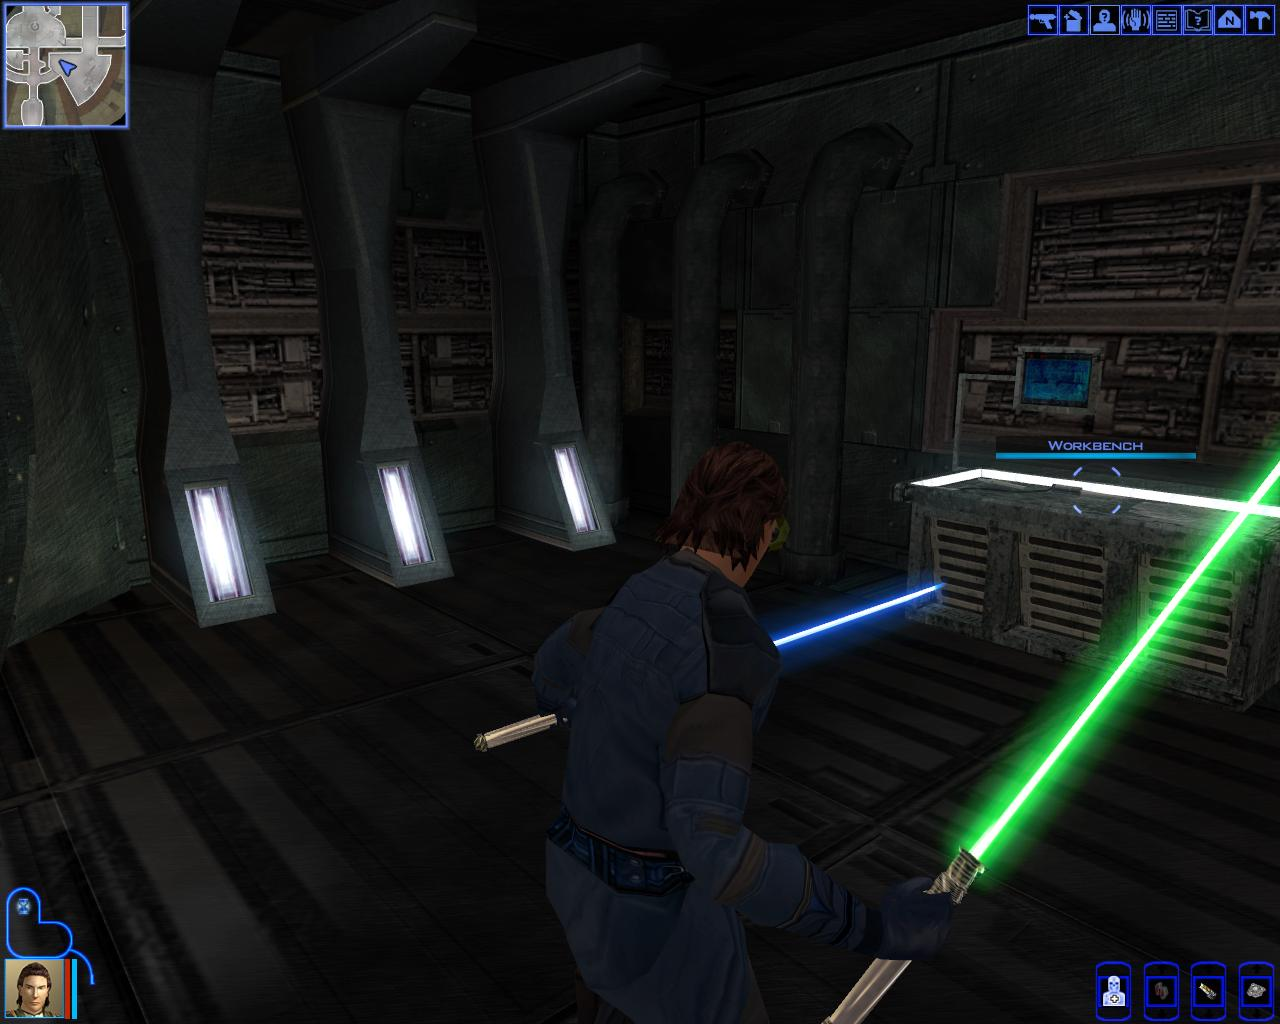 Nude mod for kotor 2 for pc pornos scenes